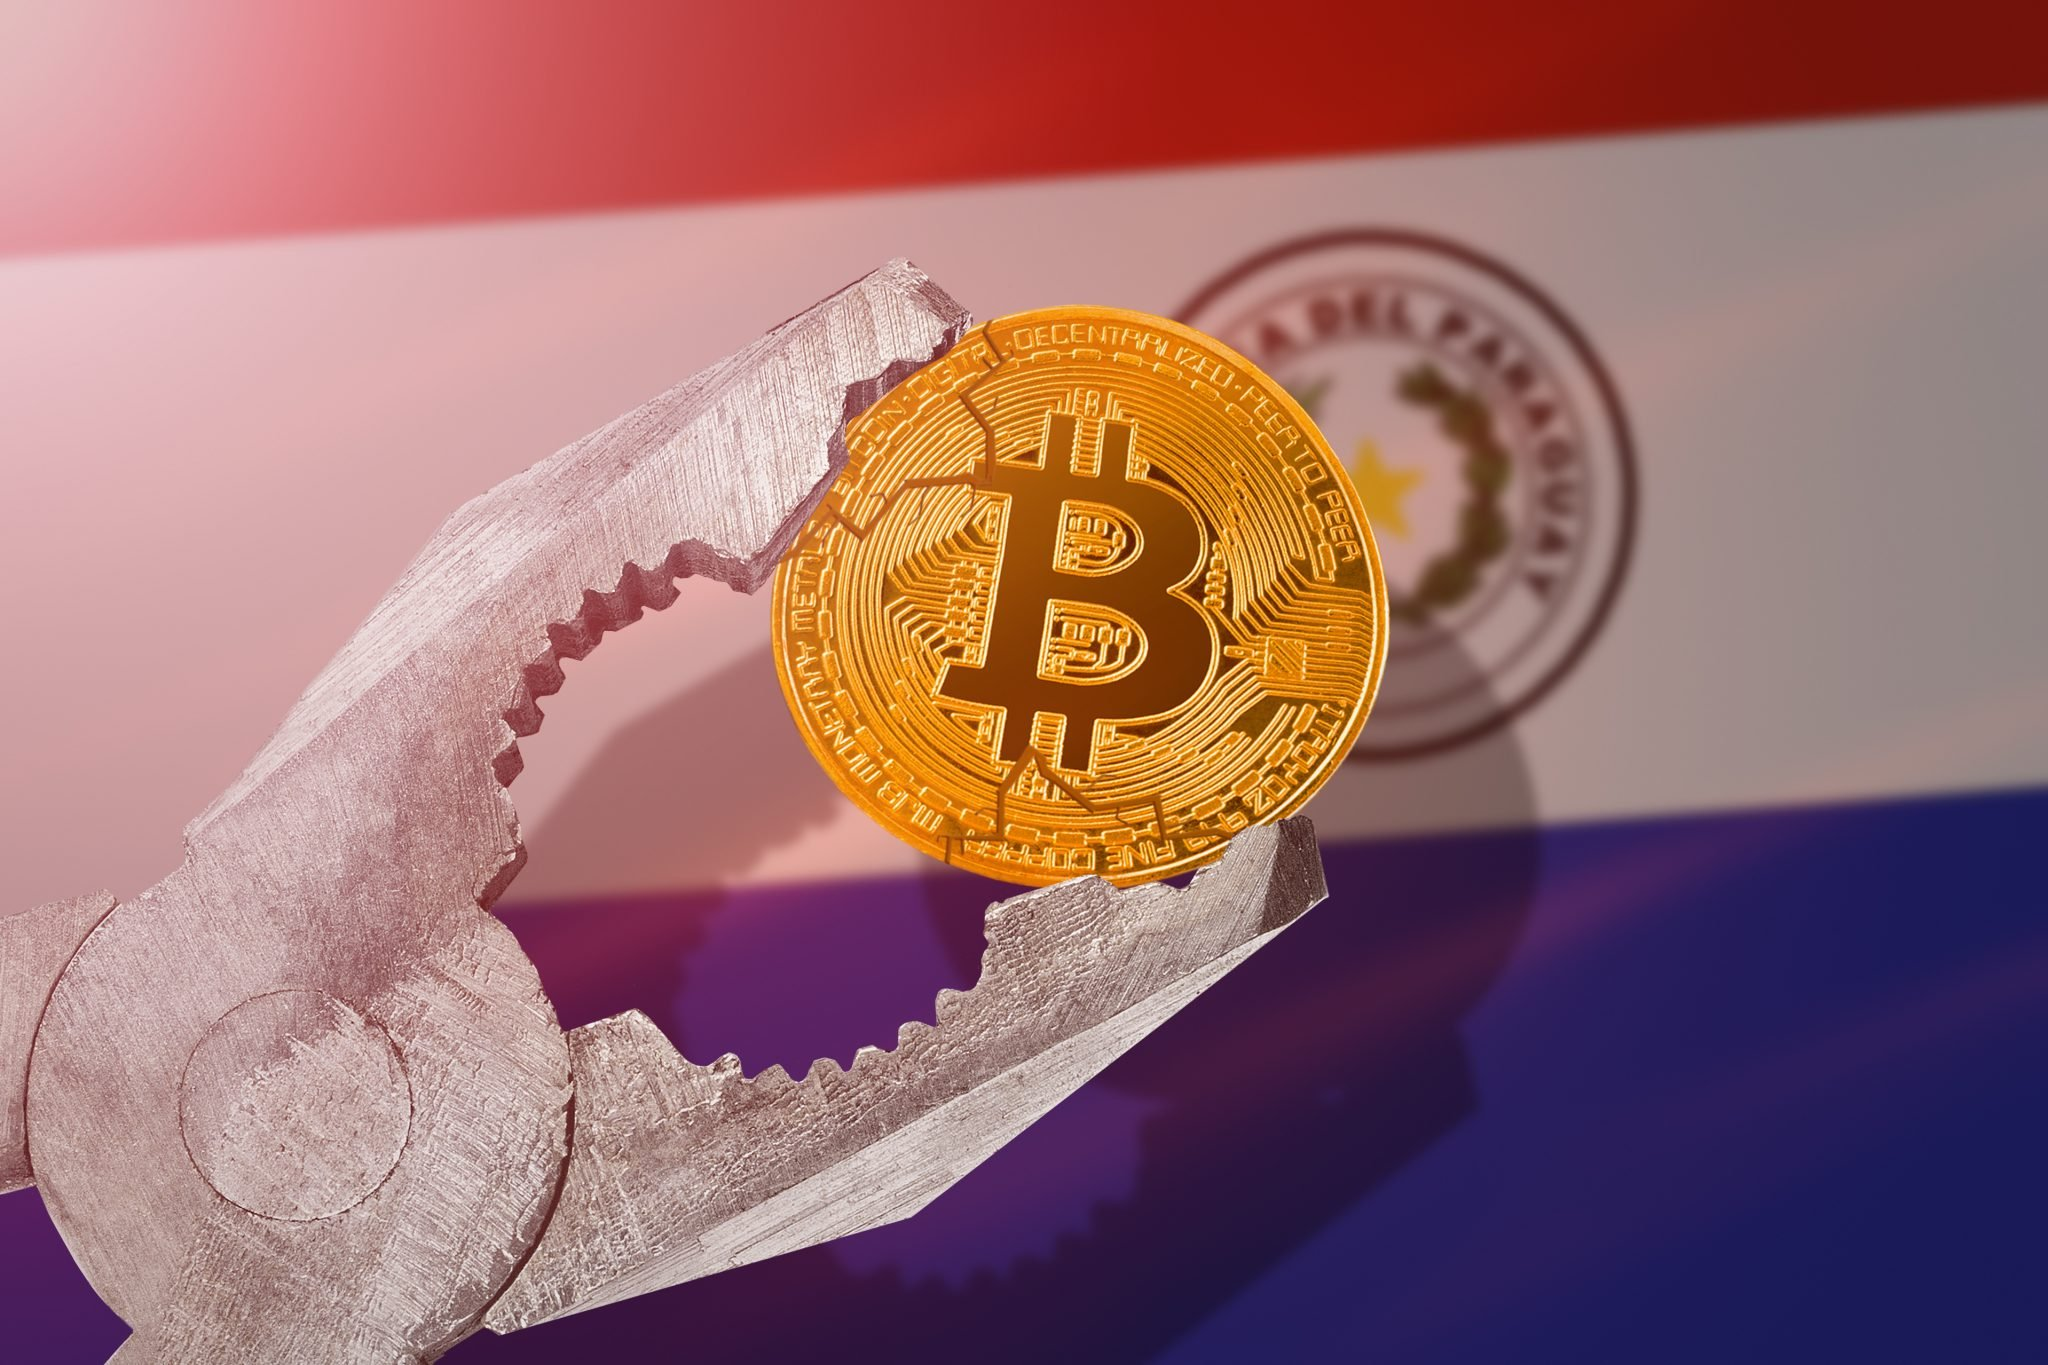 Bitcoin regulation in Paraguay; bitcoin btc coin being squeezed in vice on Paraguay flag background; limitation, prohibition, illegally, banned